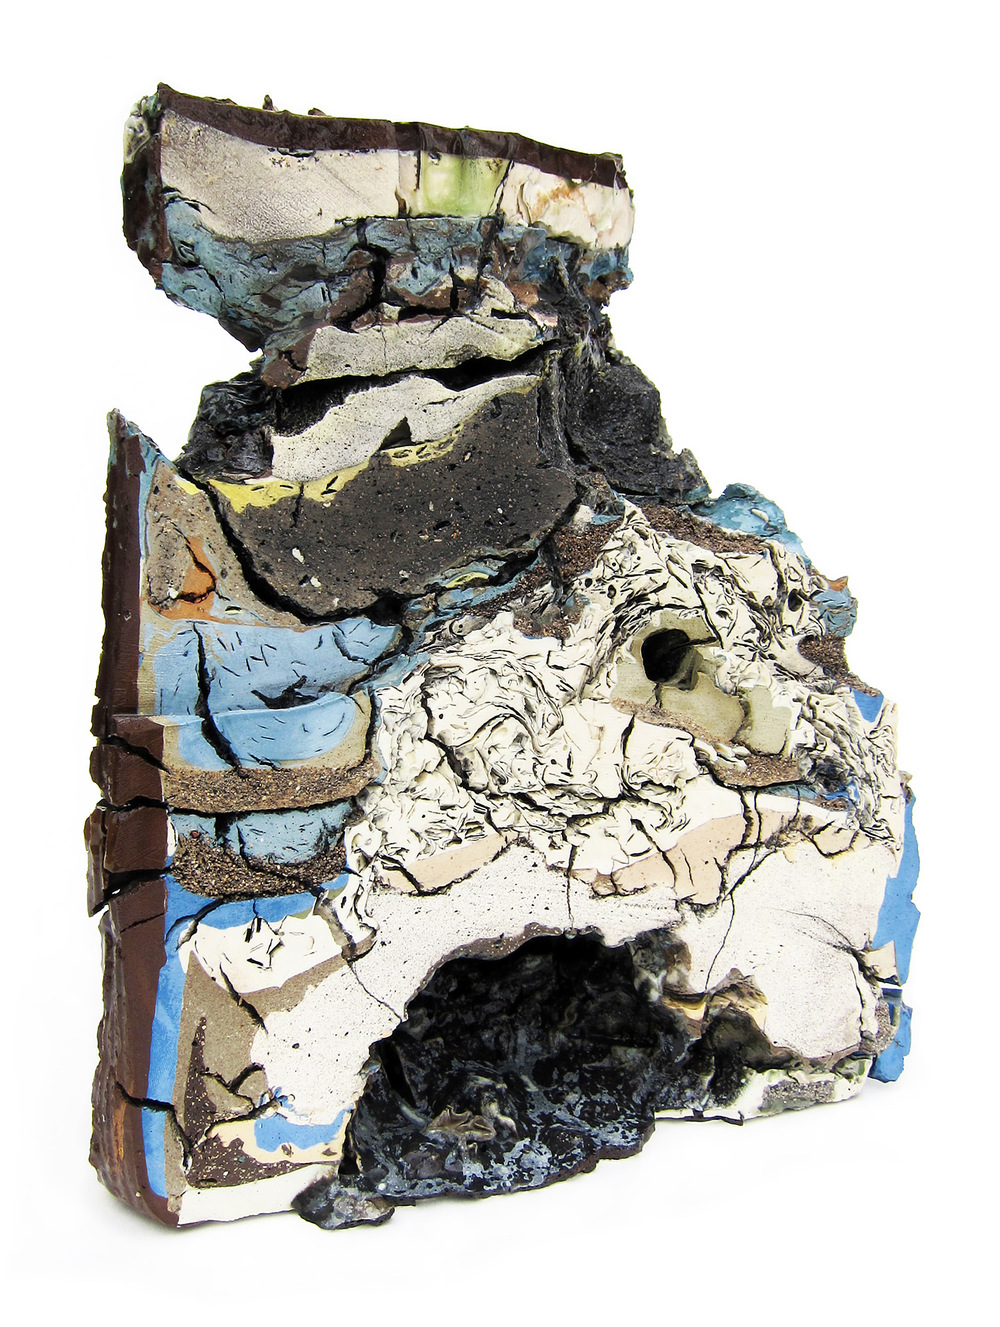 "<em>Landfill No.9: Northeastern Cross Section</em> <span style=""color:#CC0000;font-size:1.5em;"">•</span>"